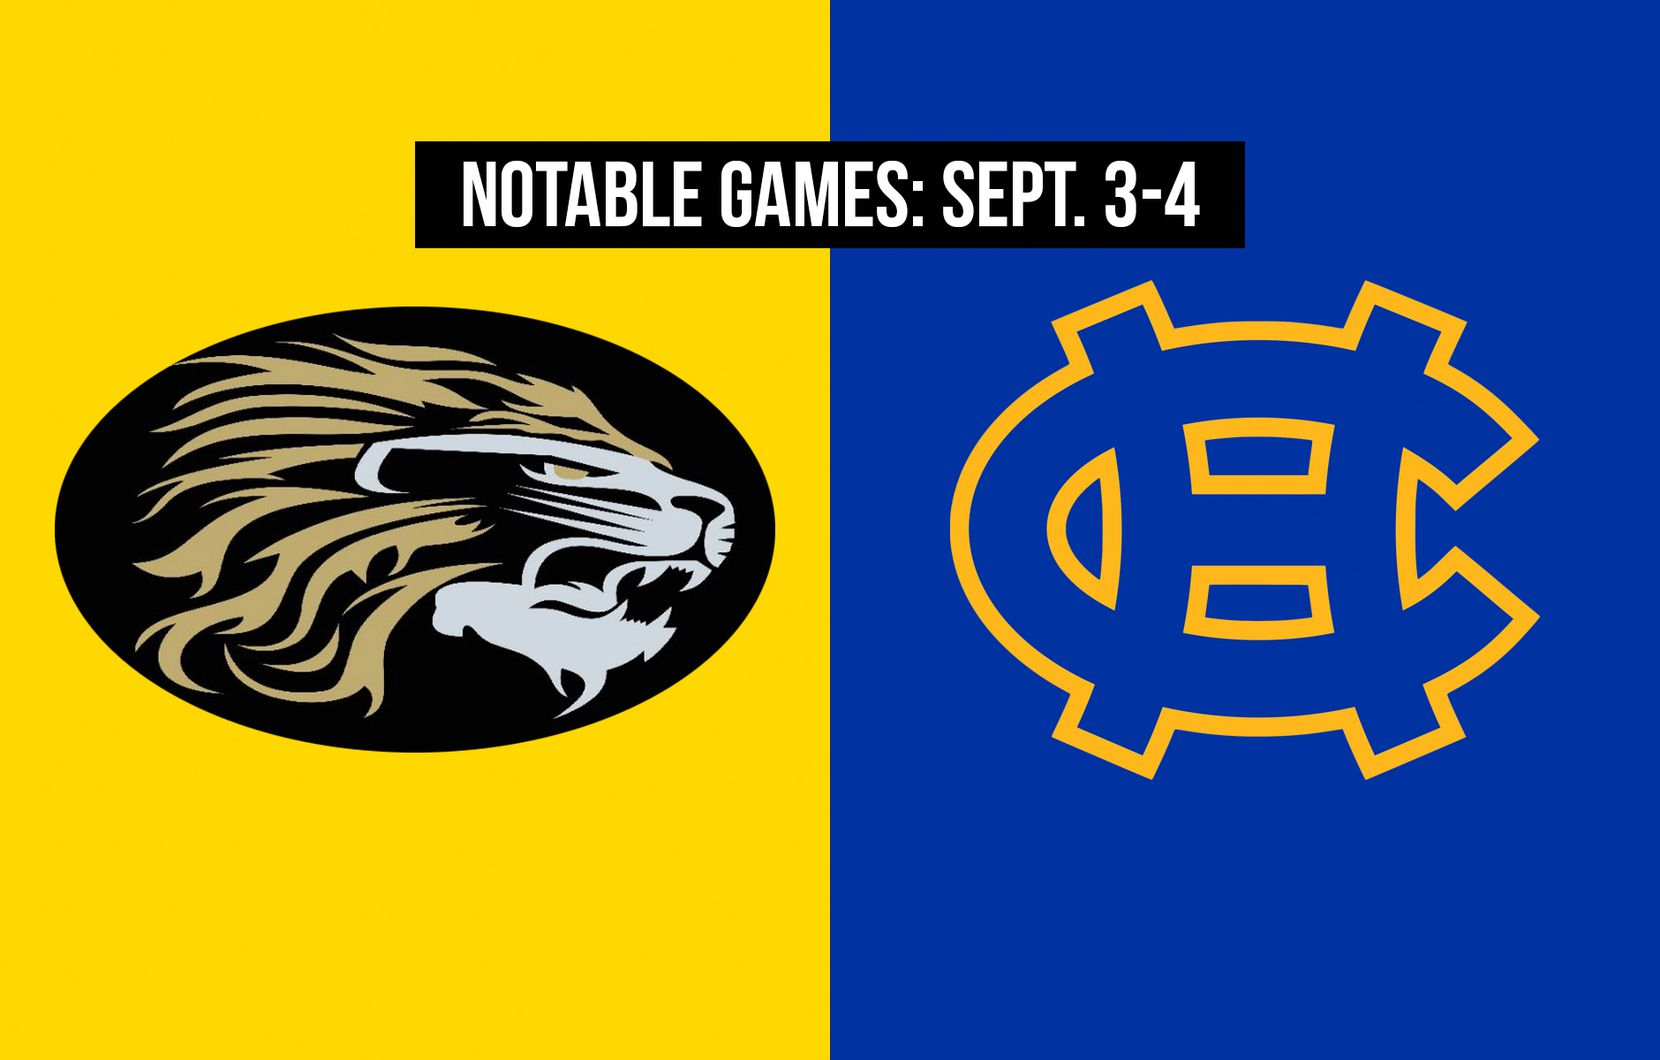 Notable games for the week of Sept. 3-4 of the 2020 season: Kaufman vs. Tyler Chapel Hill.